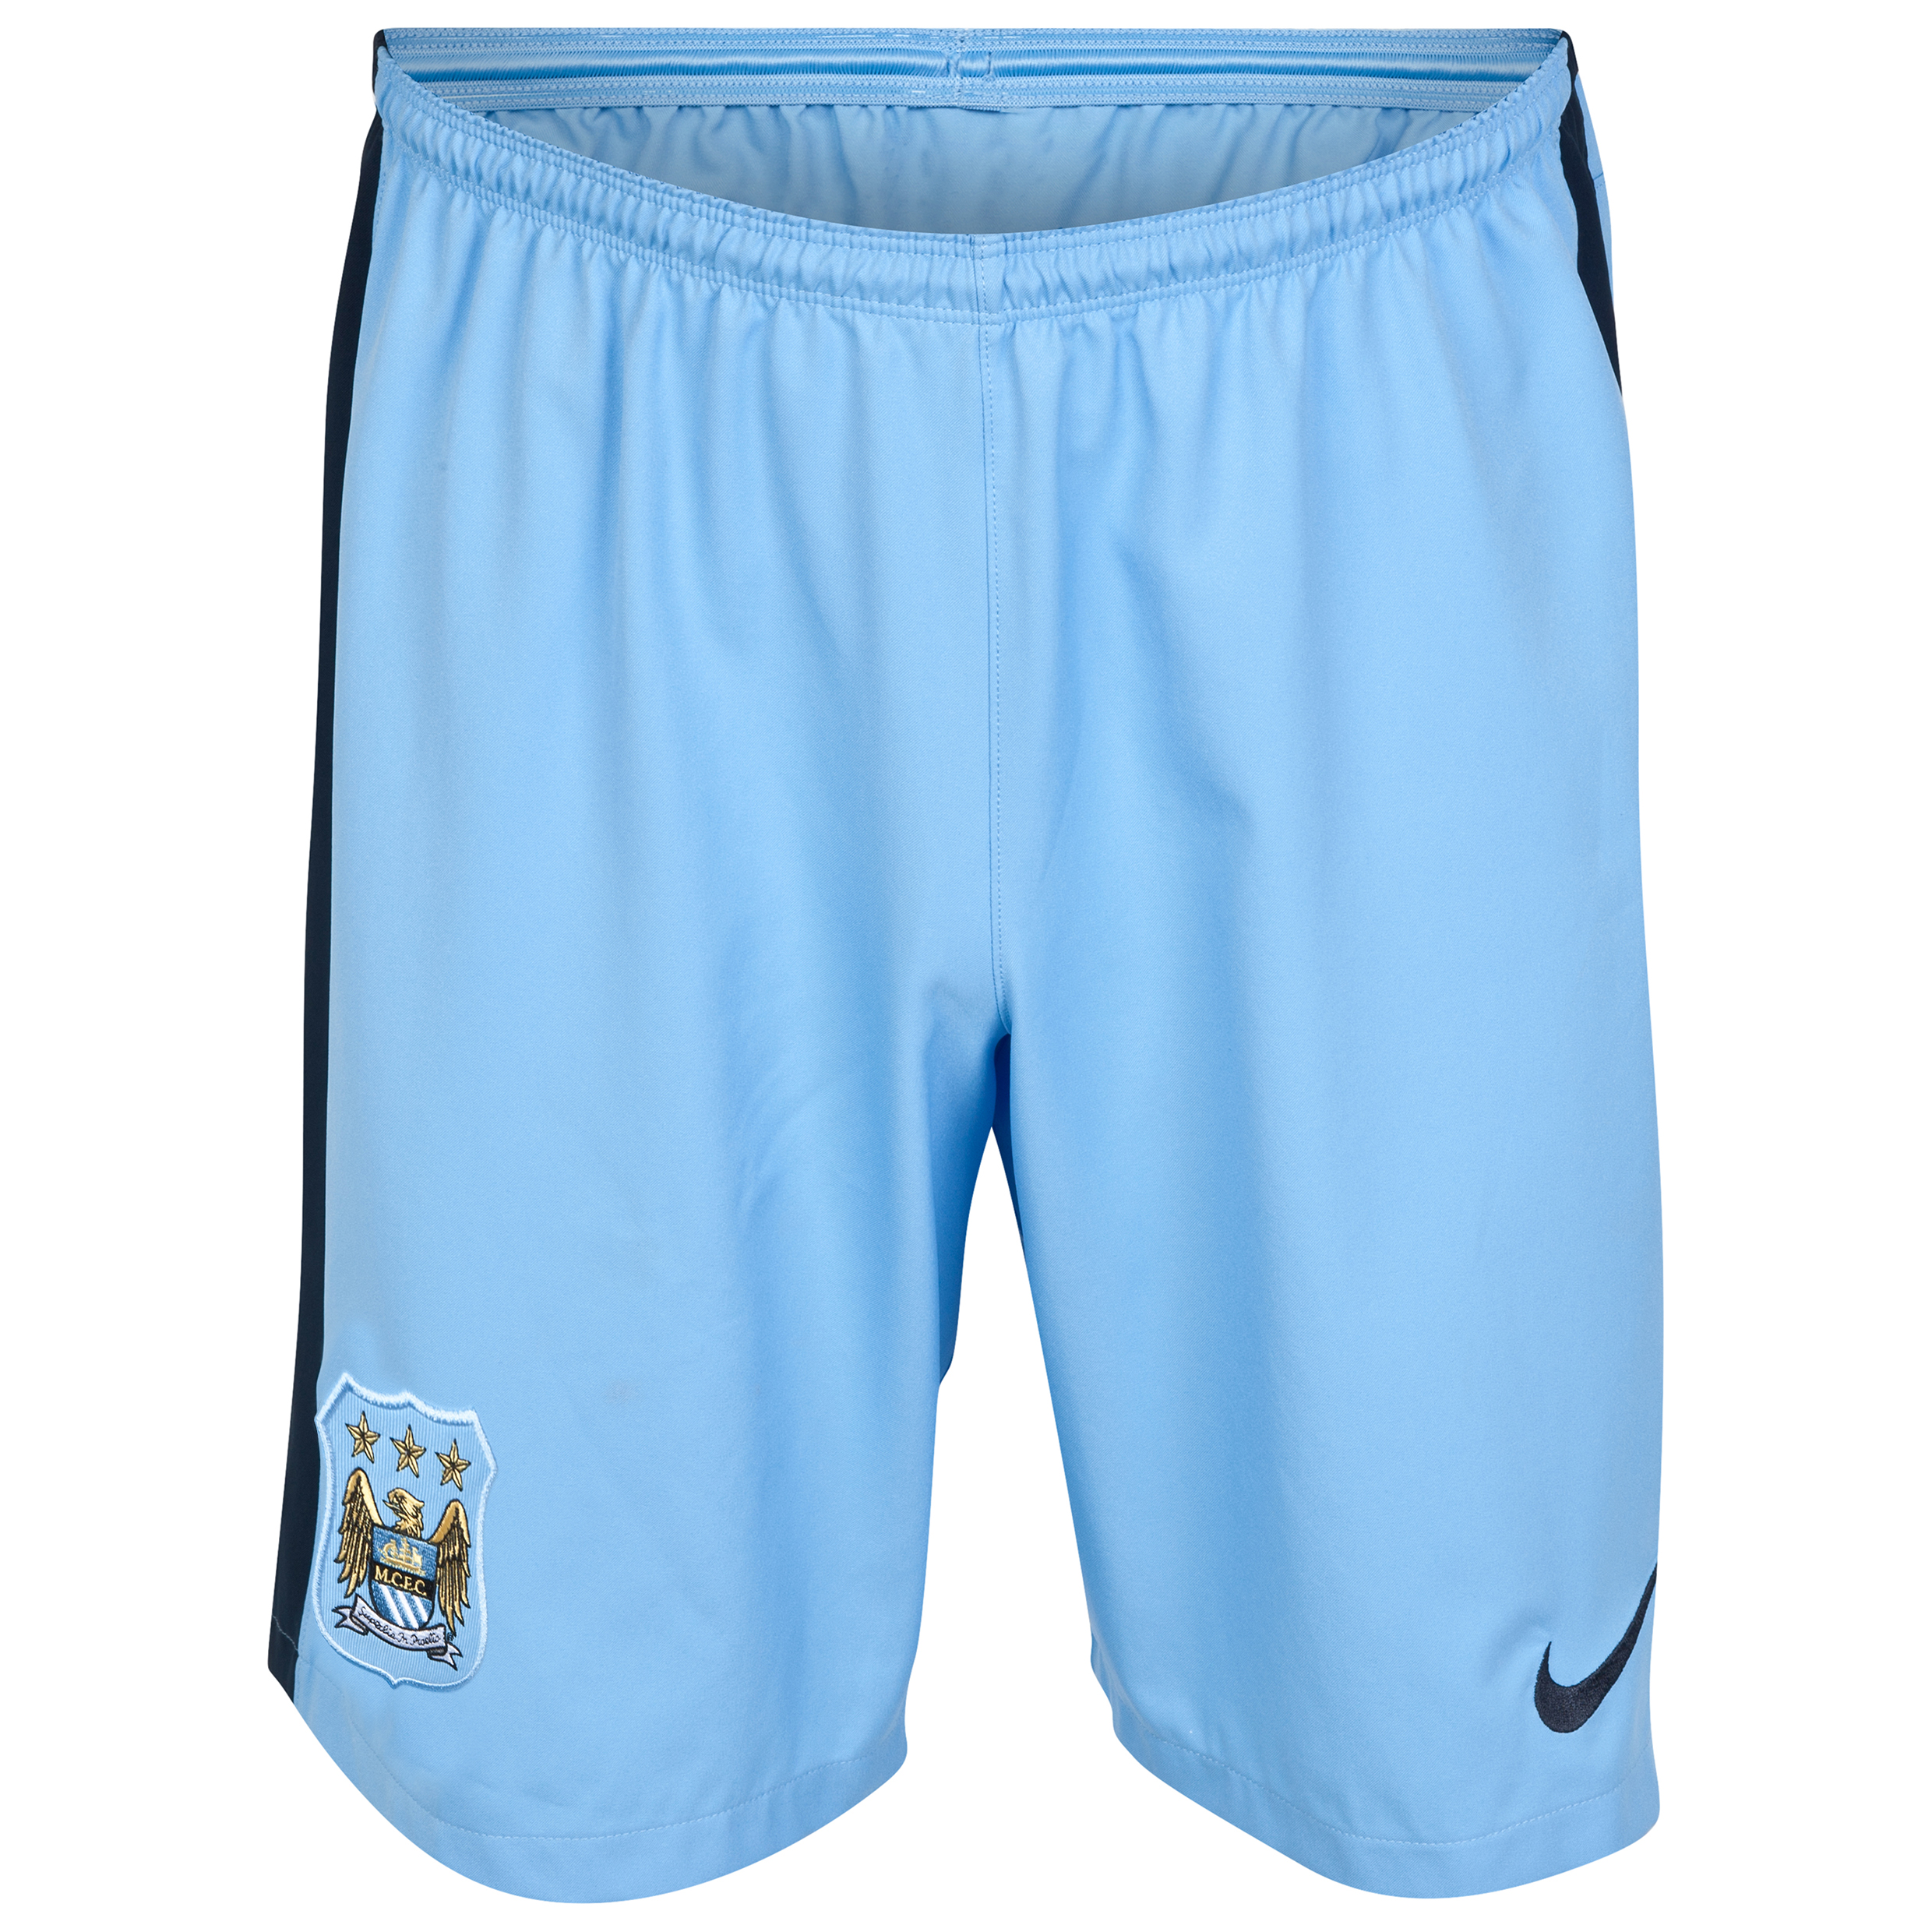 Manchester City Home Shorts 2014/15